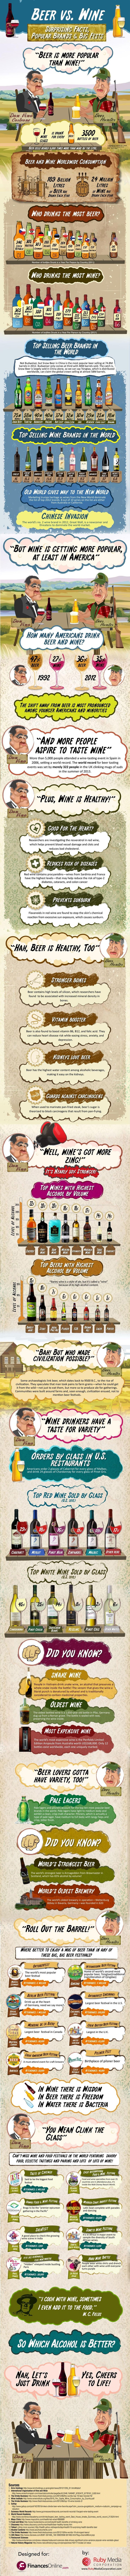 Really awesome beer vs wine comparison, with some...